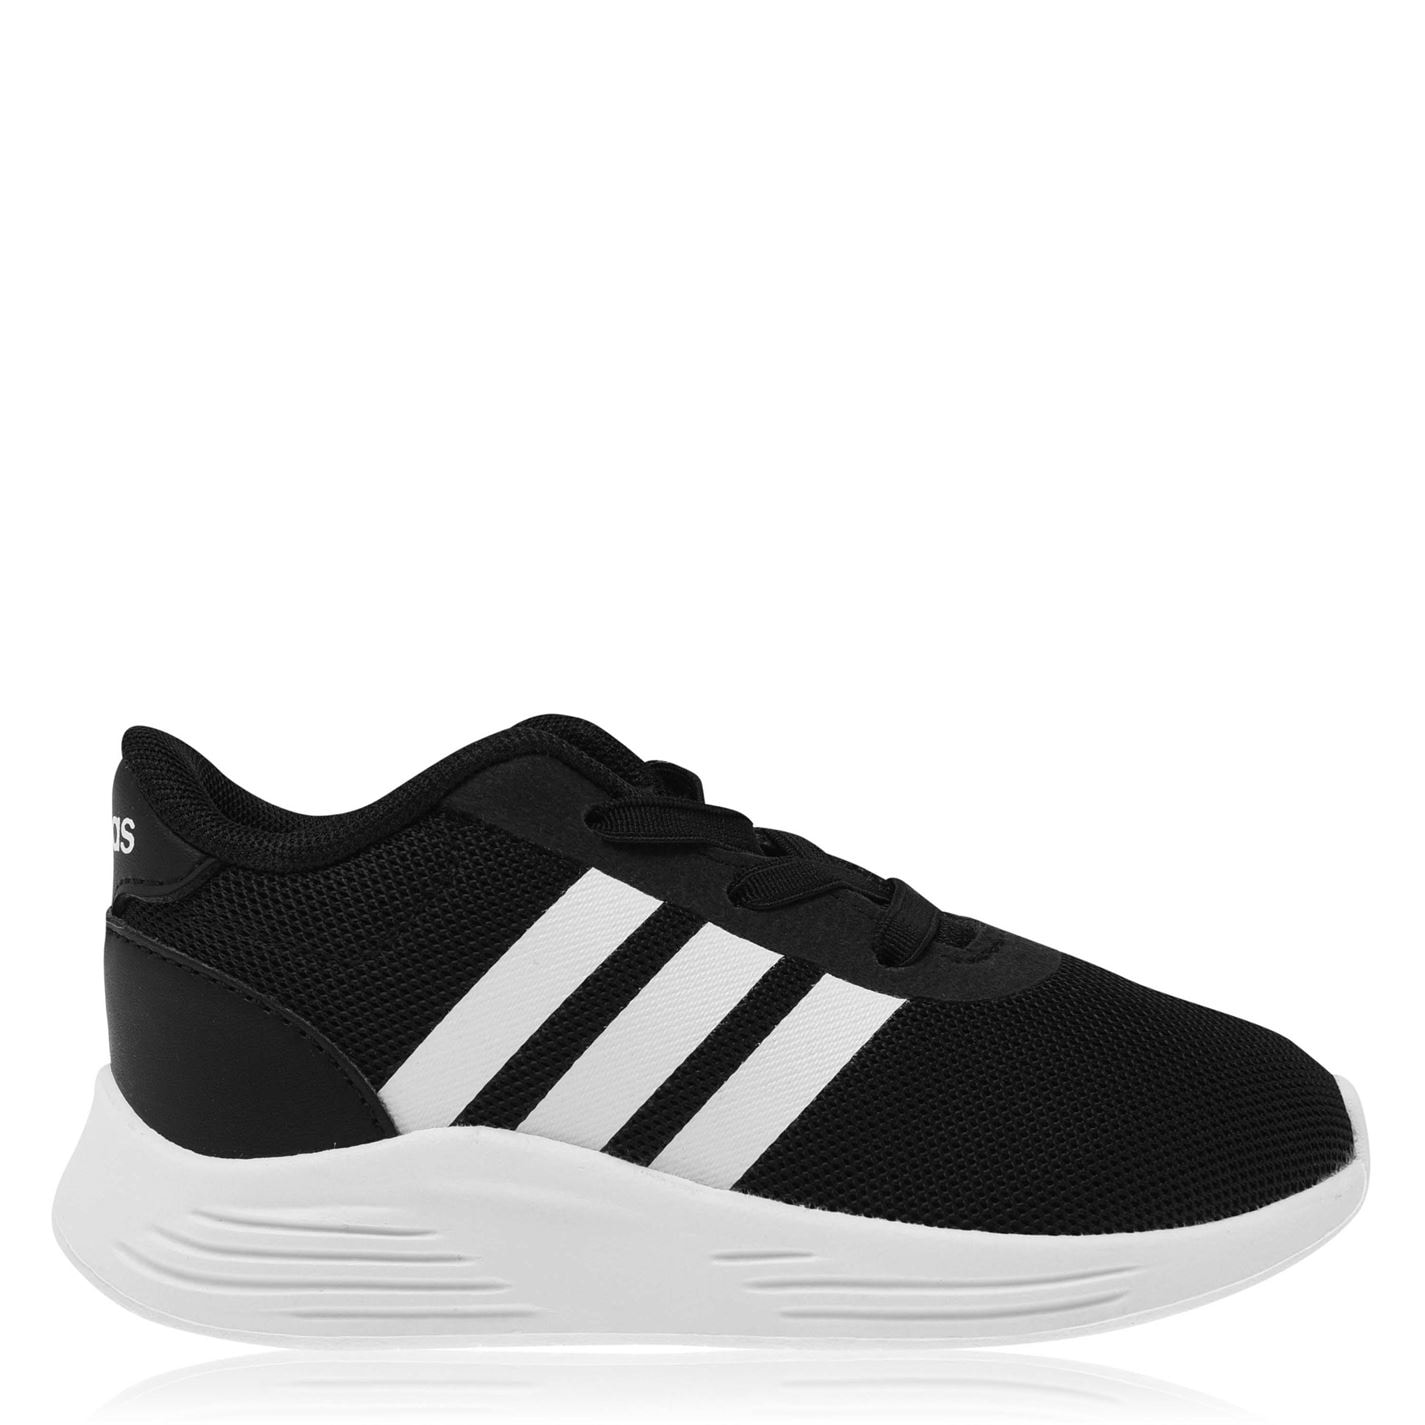 adidas Lite Racer 2 Infant Boys Trainers Black/White